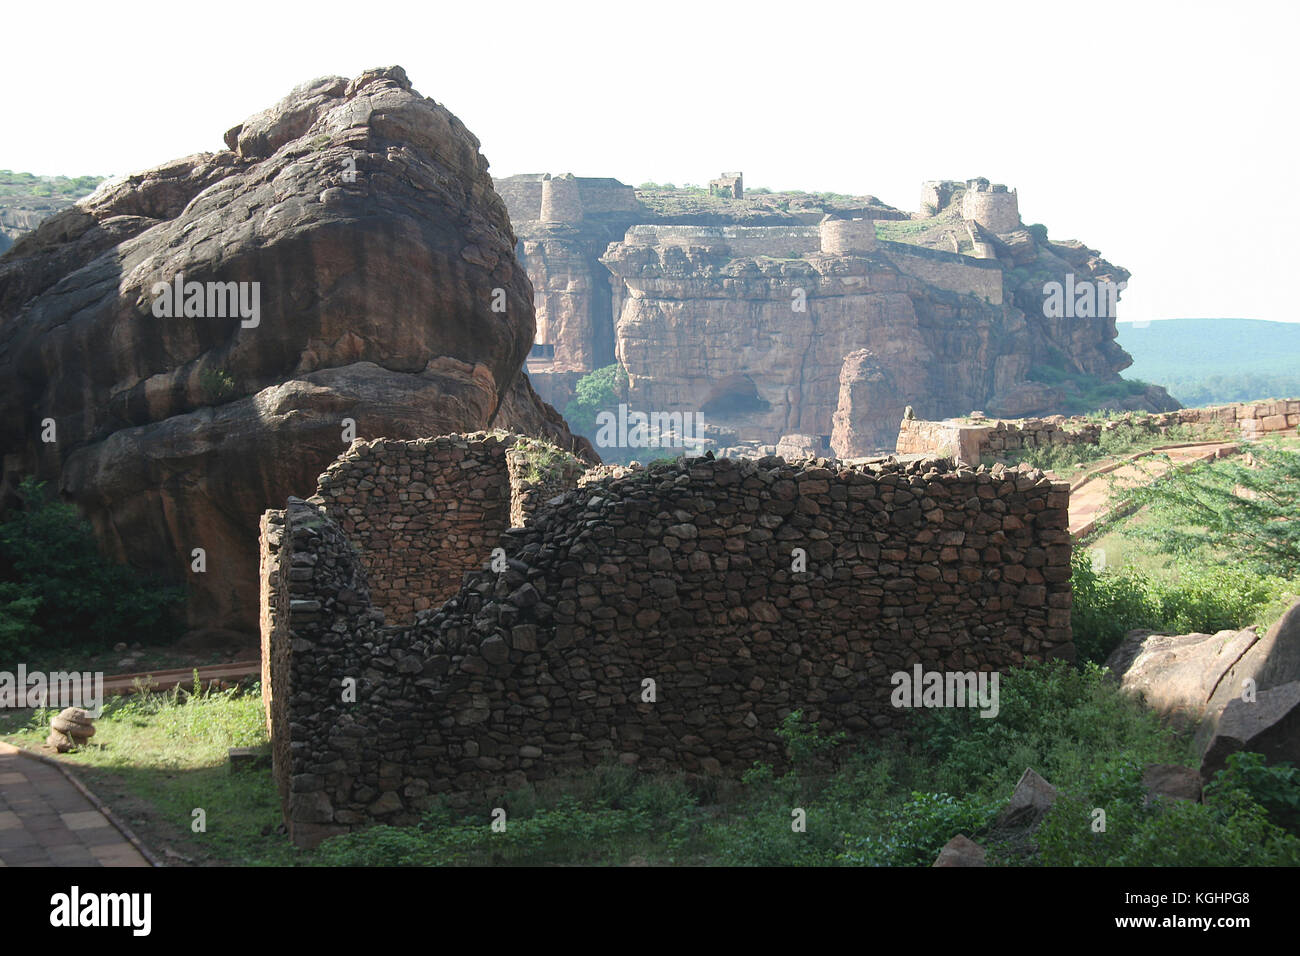 View of southern hill and fort from northern hill at Badami, Karnataka, India, Asia Stock Photo